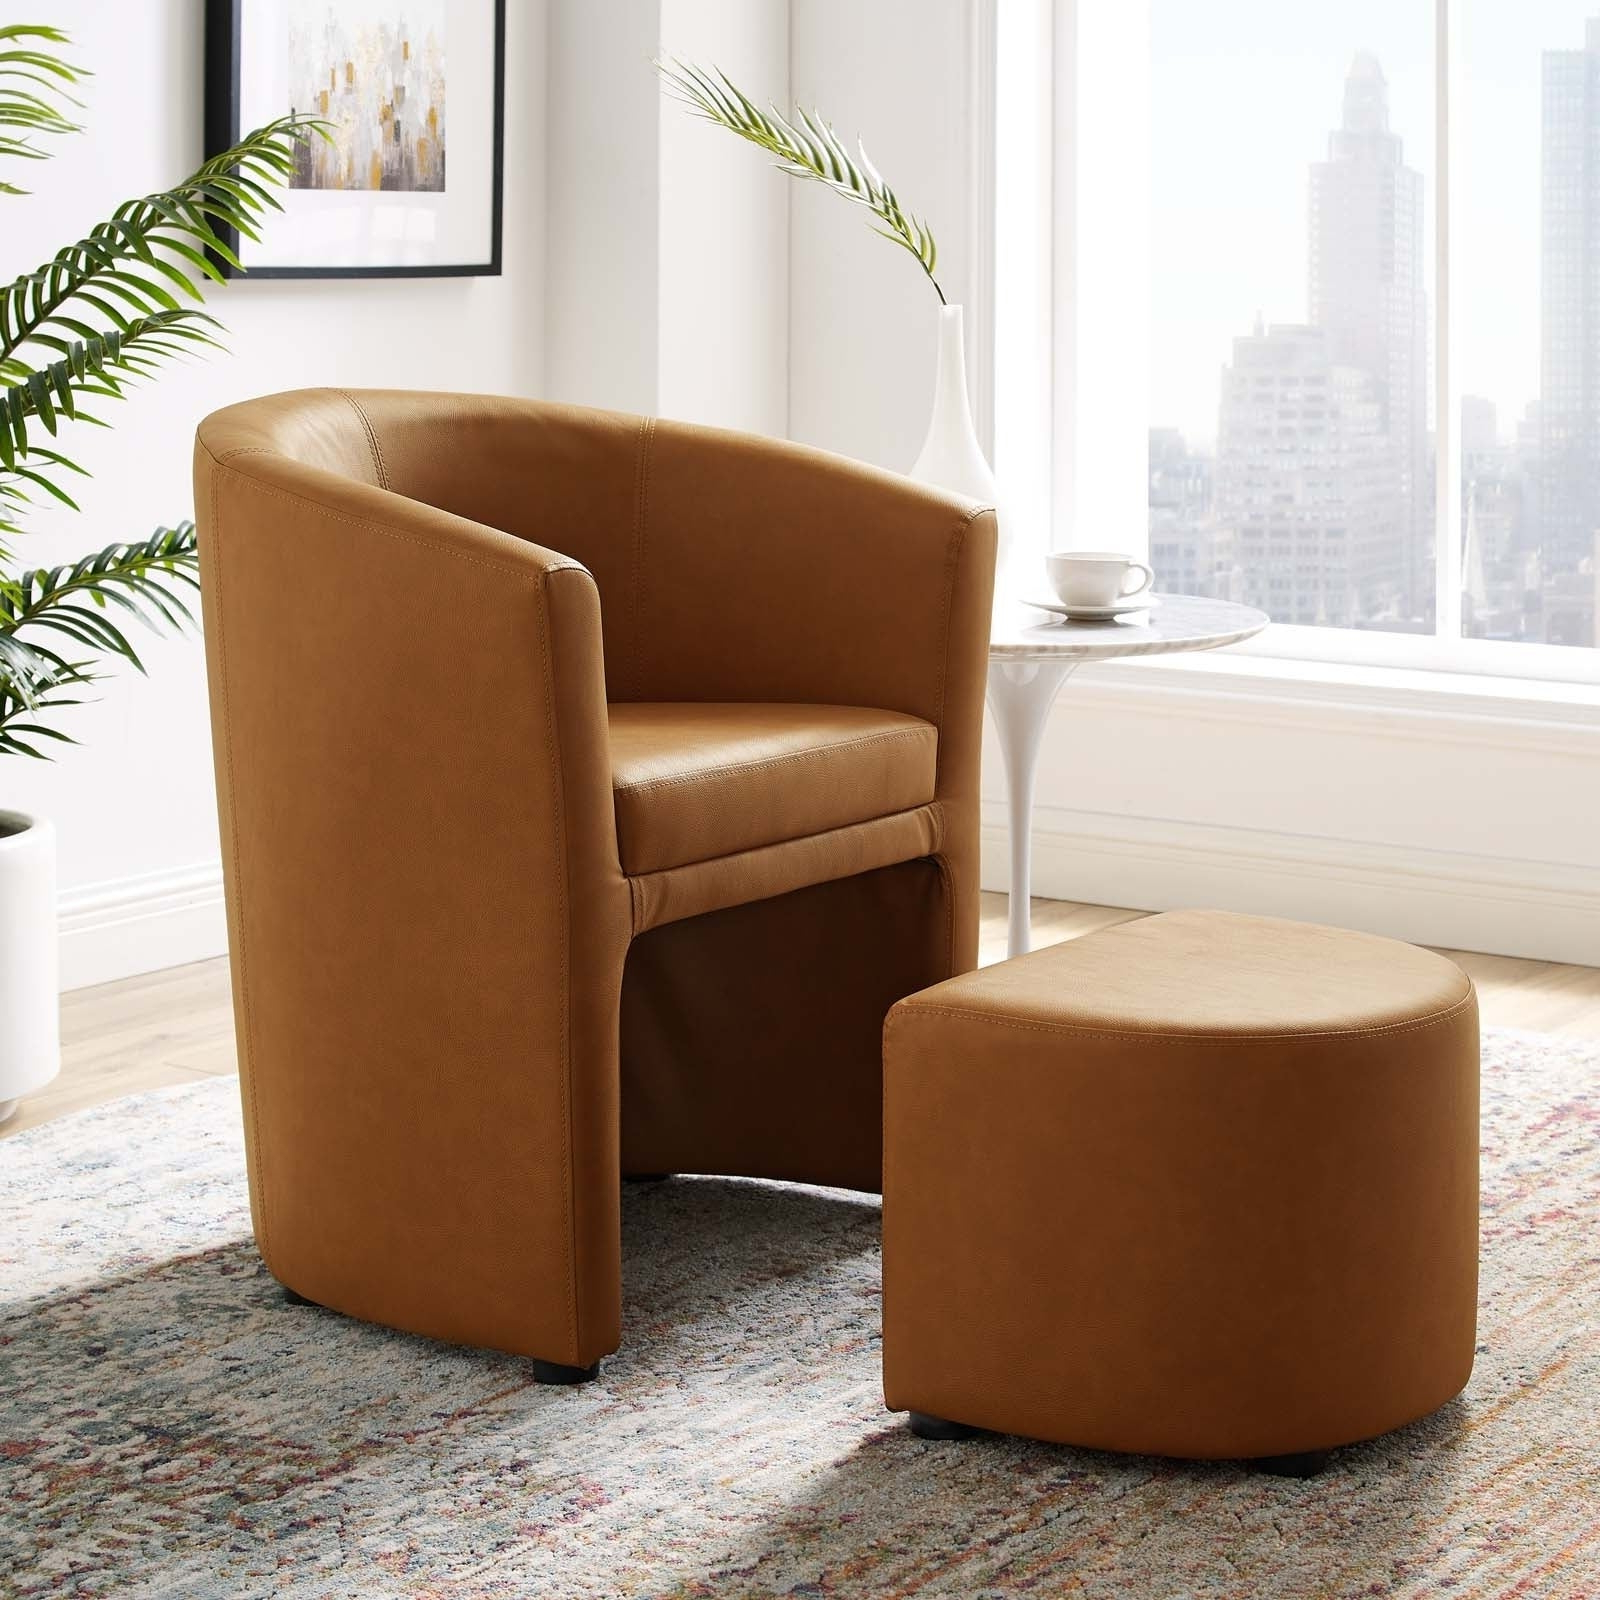 Divulge Modern Leatherette Armchair And Ottoman In Latest Modern Armchairs And Ottoman (View 16 of 20)